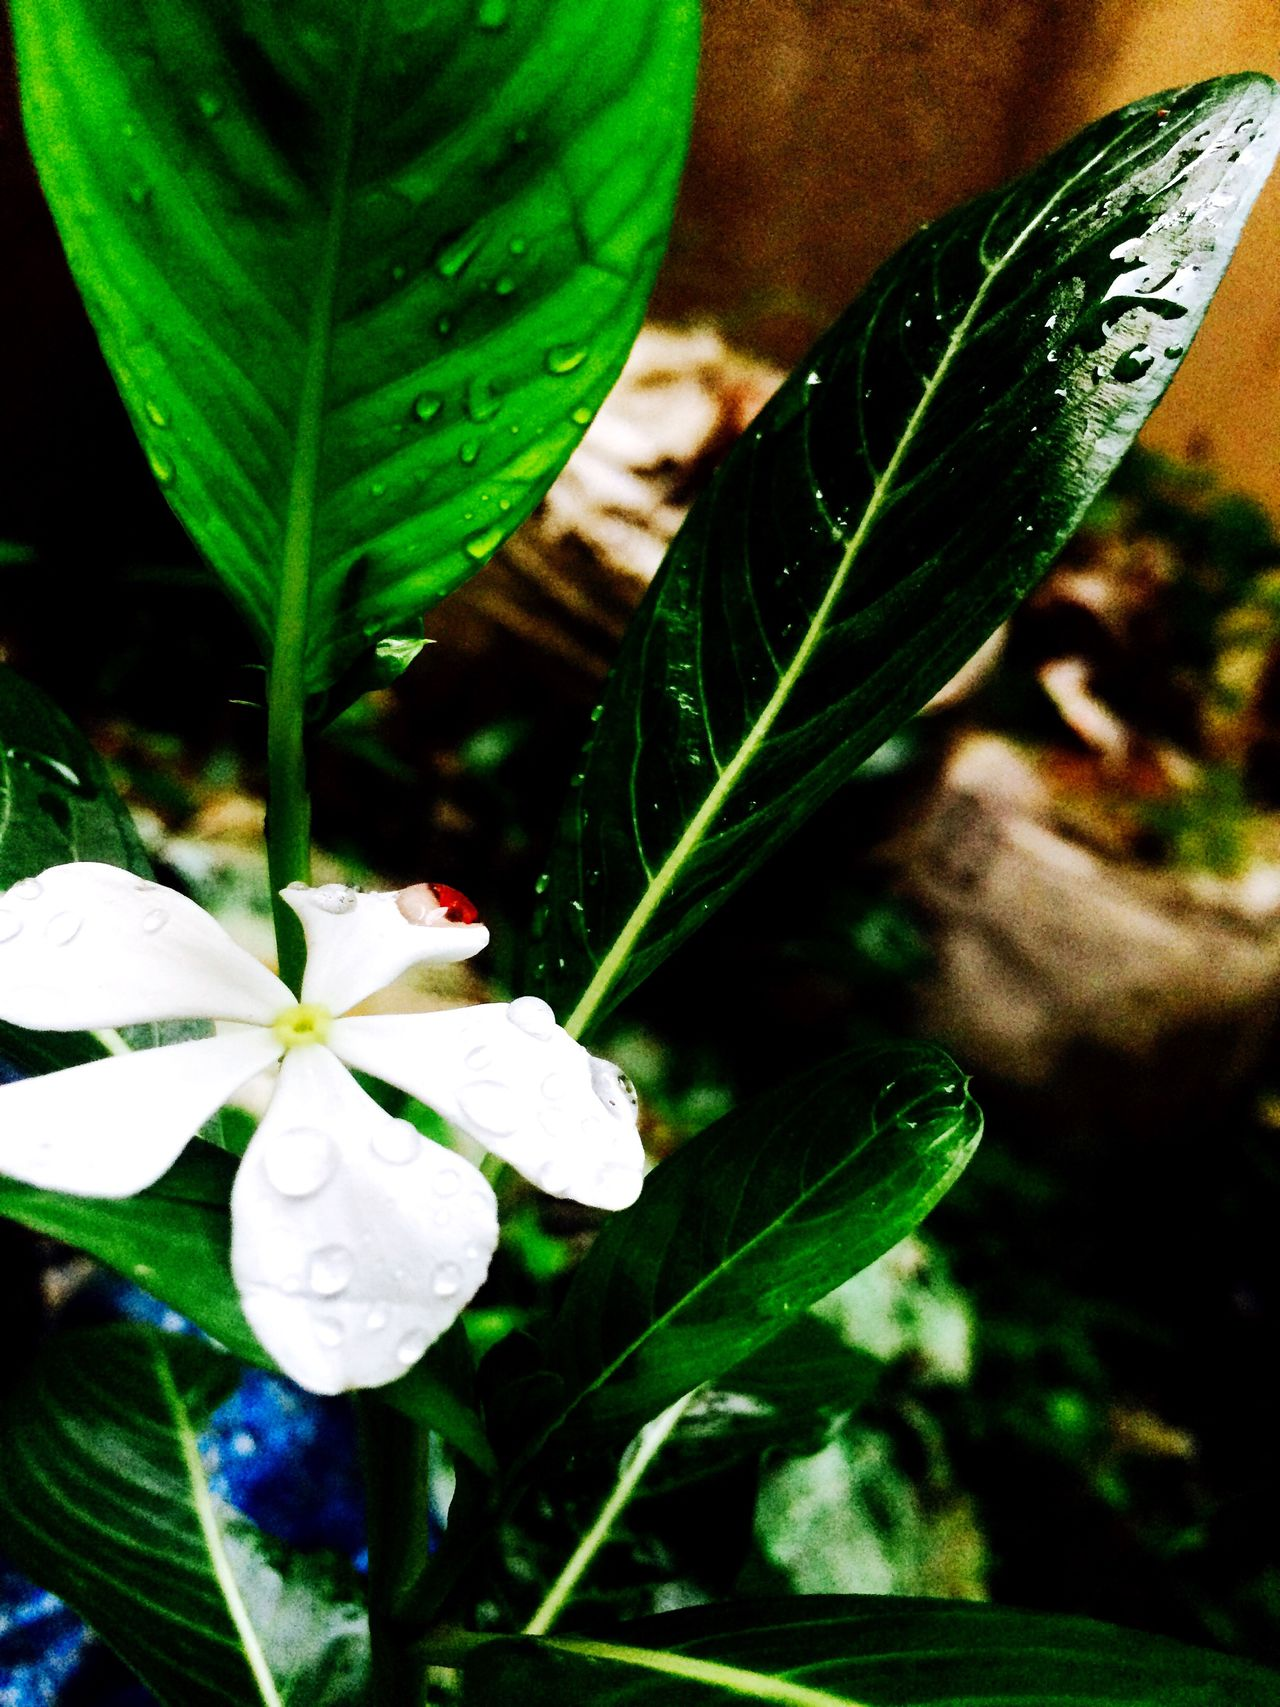 Small life never becomes dark it shines more with droplets of happiness